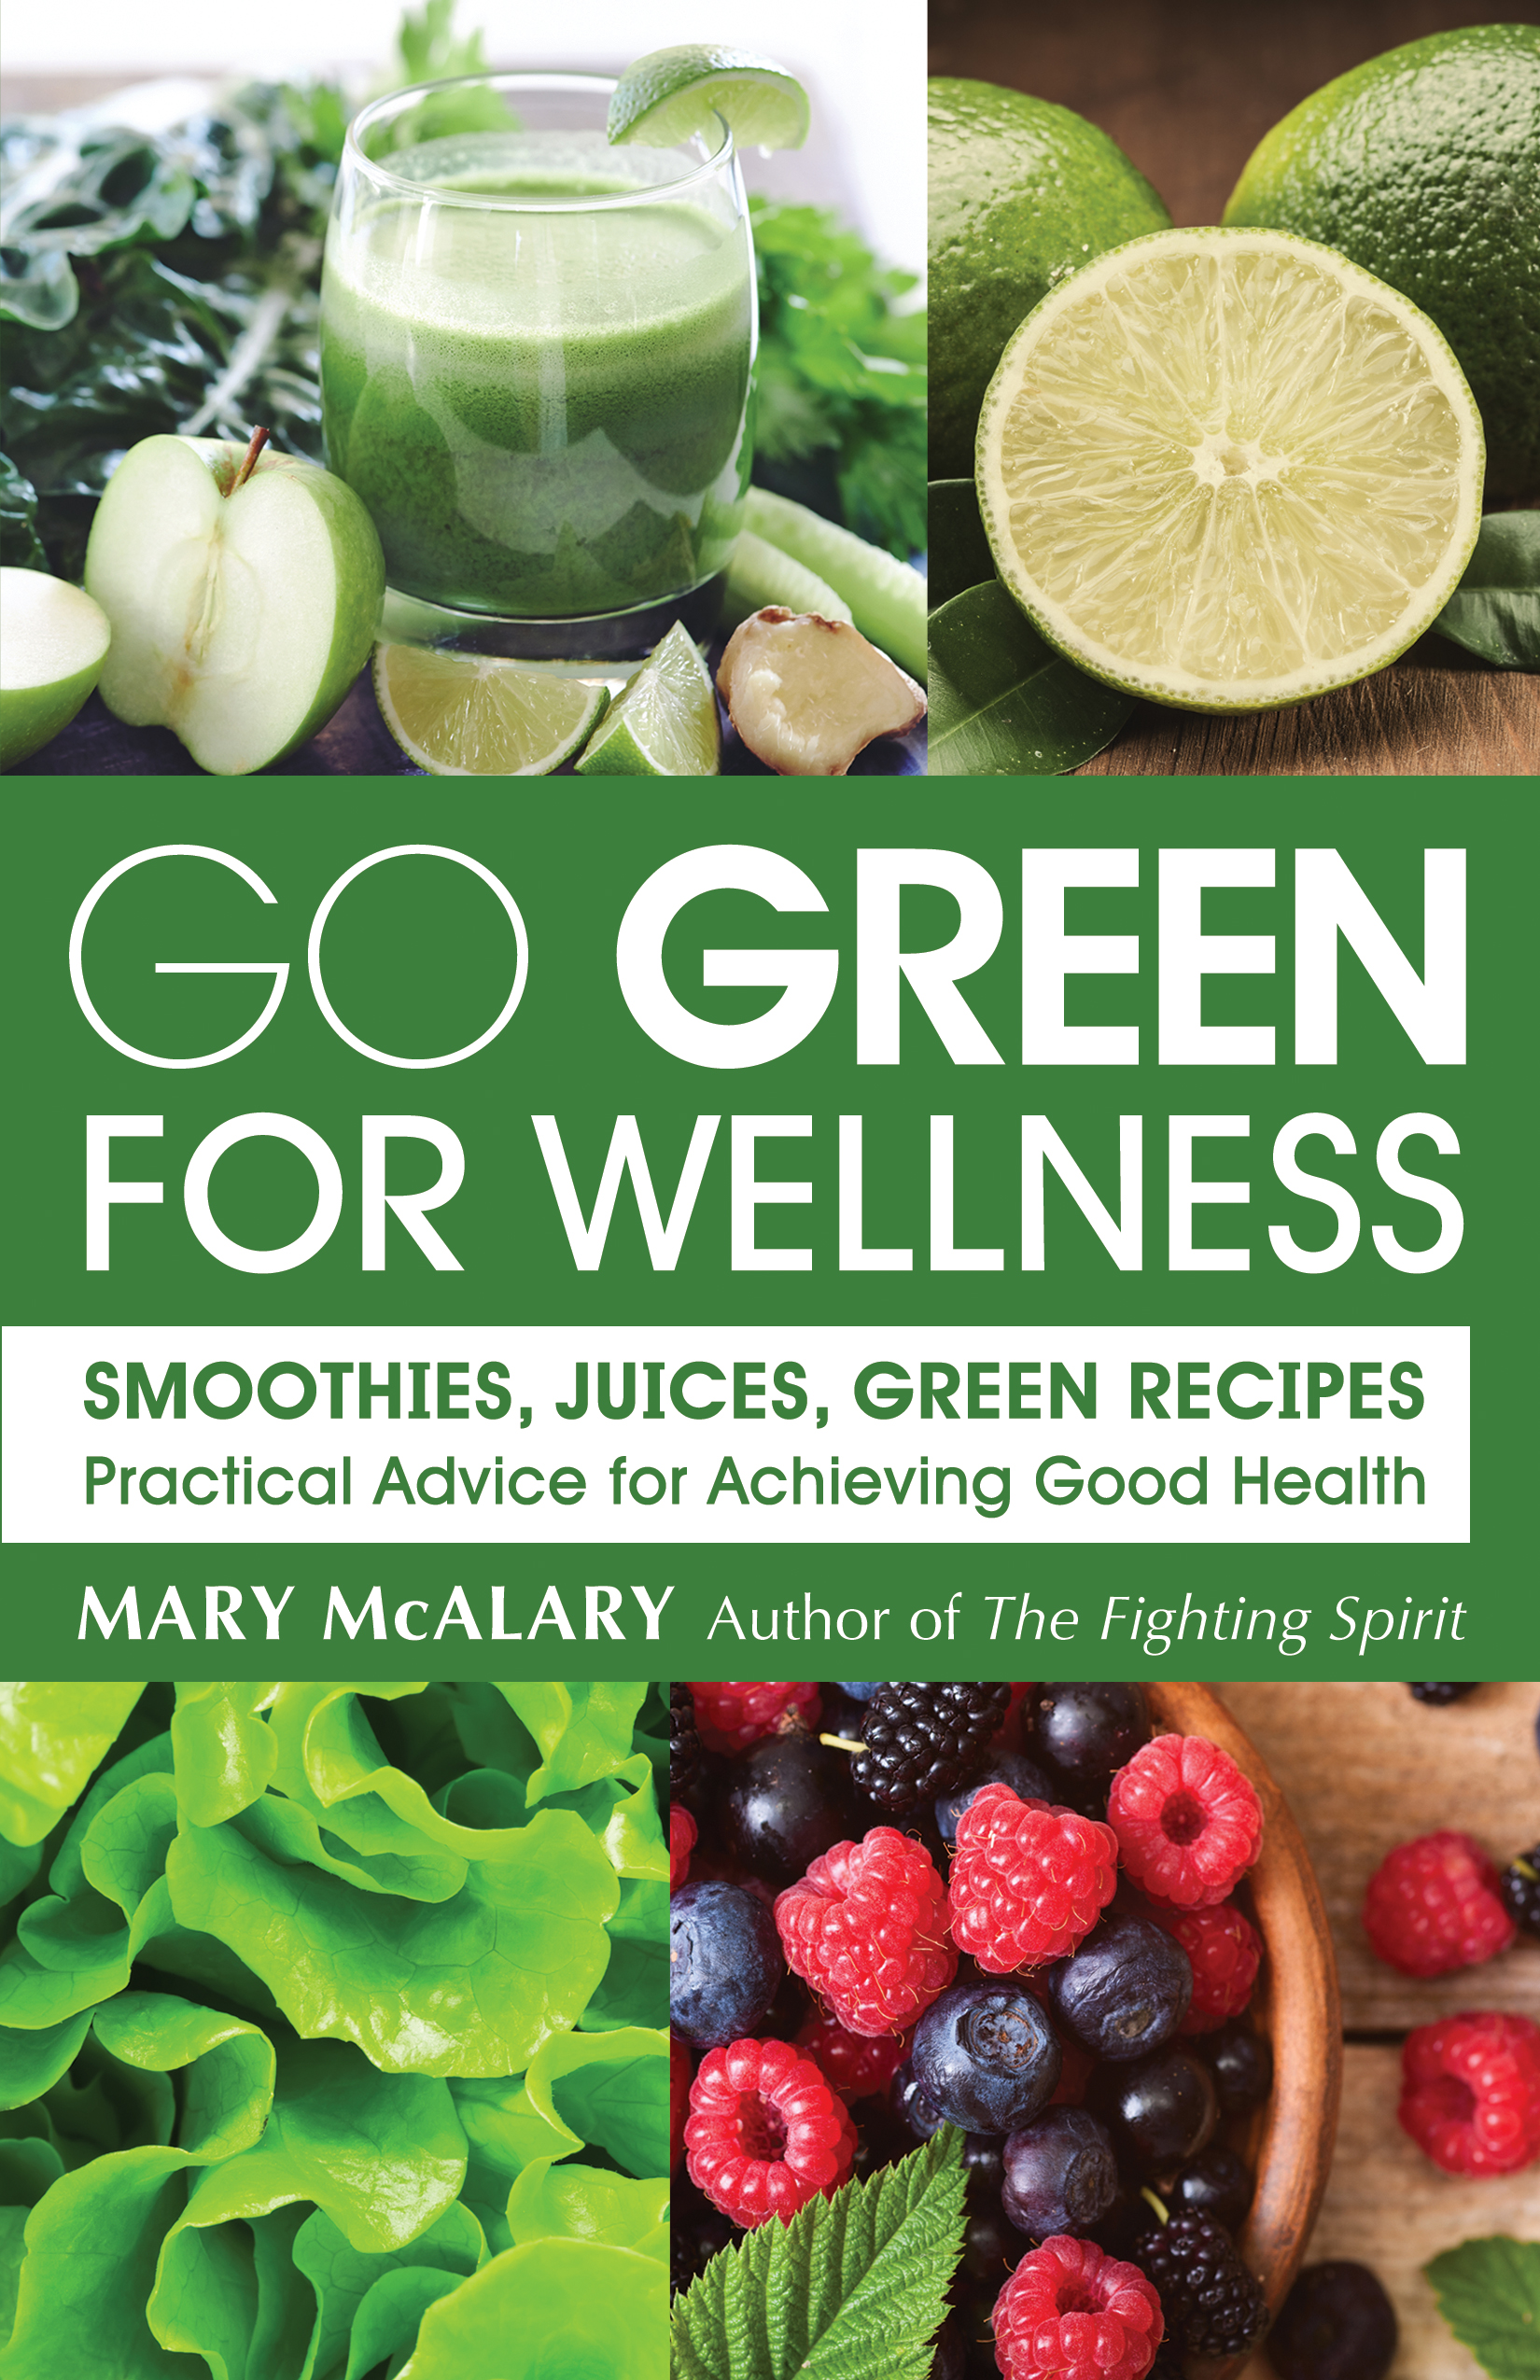 Go Green For Wellness